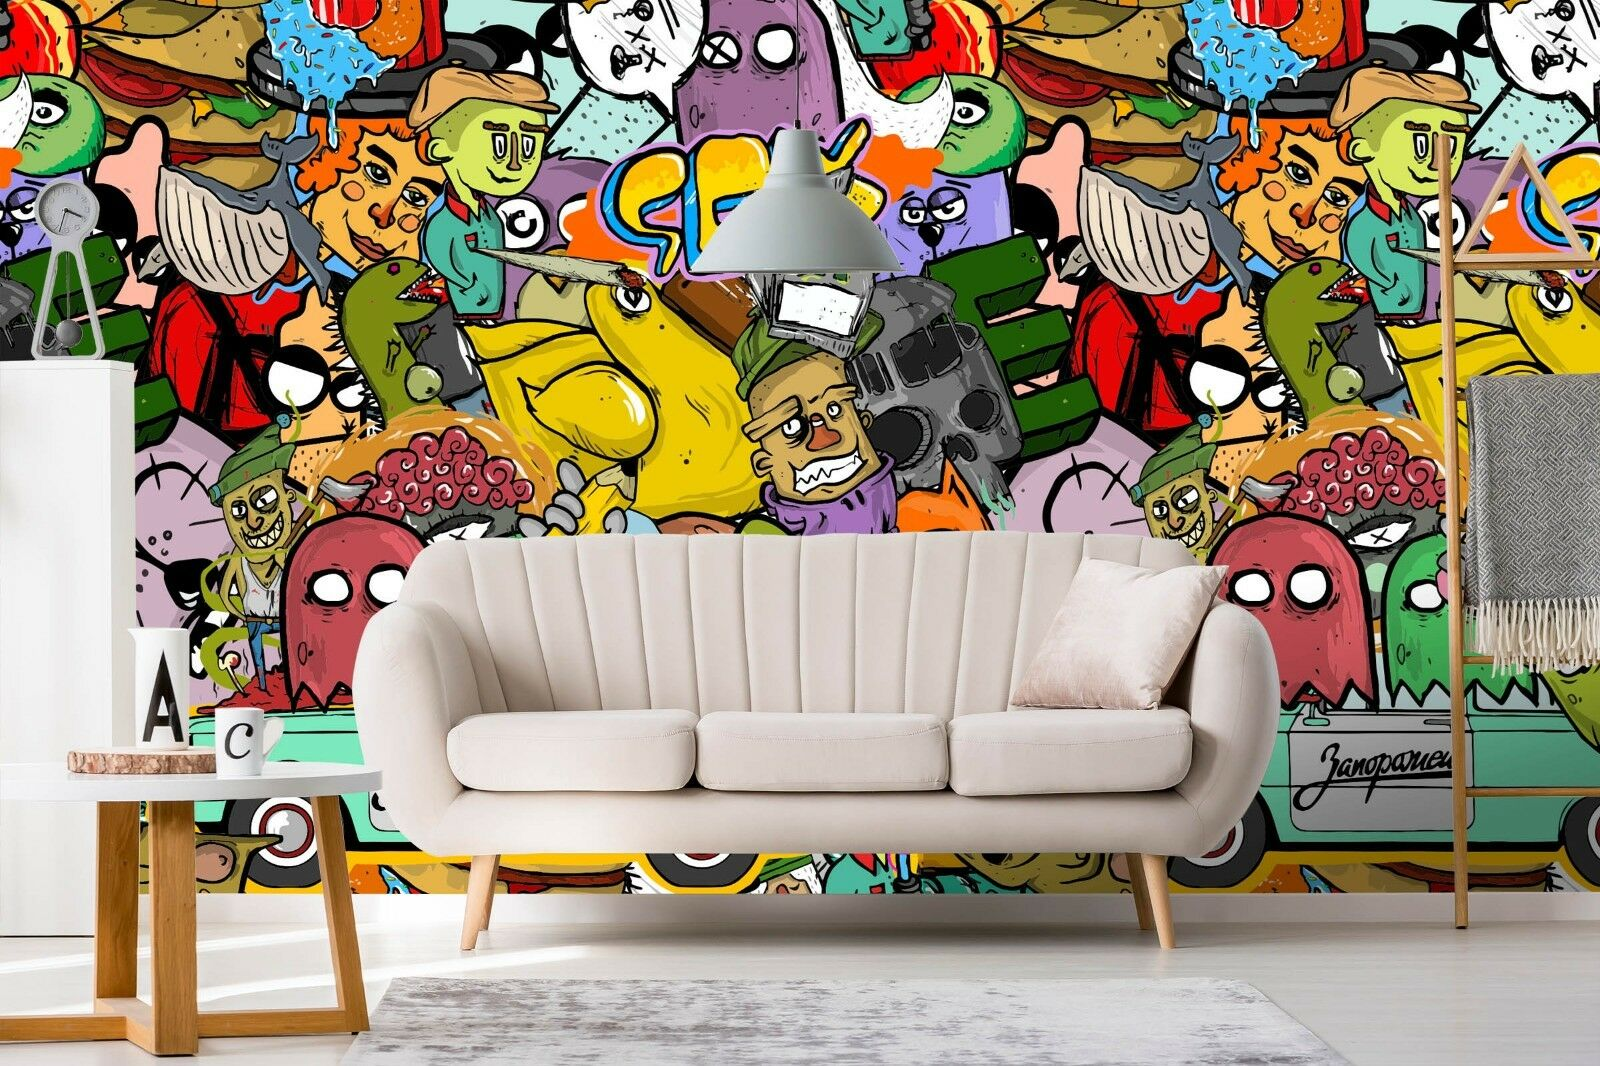 3D Hand Painted Car 34 Wall Paper Exclusive MXY Wallpaper Mural Decal Indoor